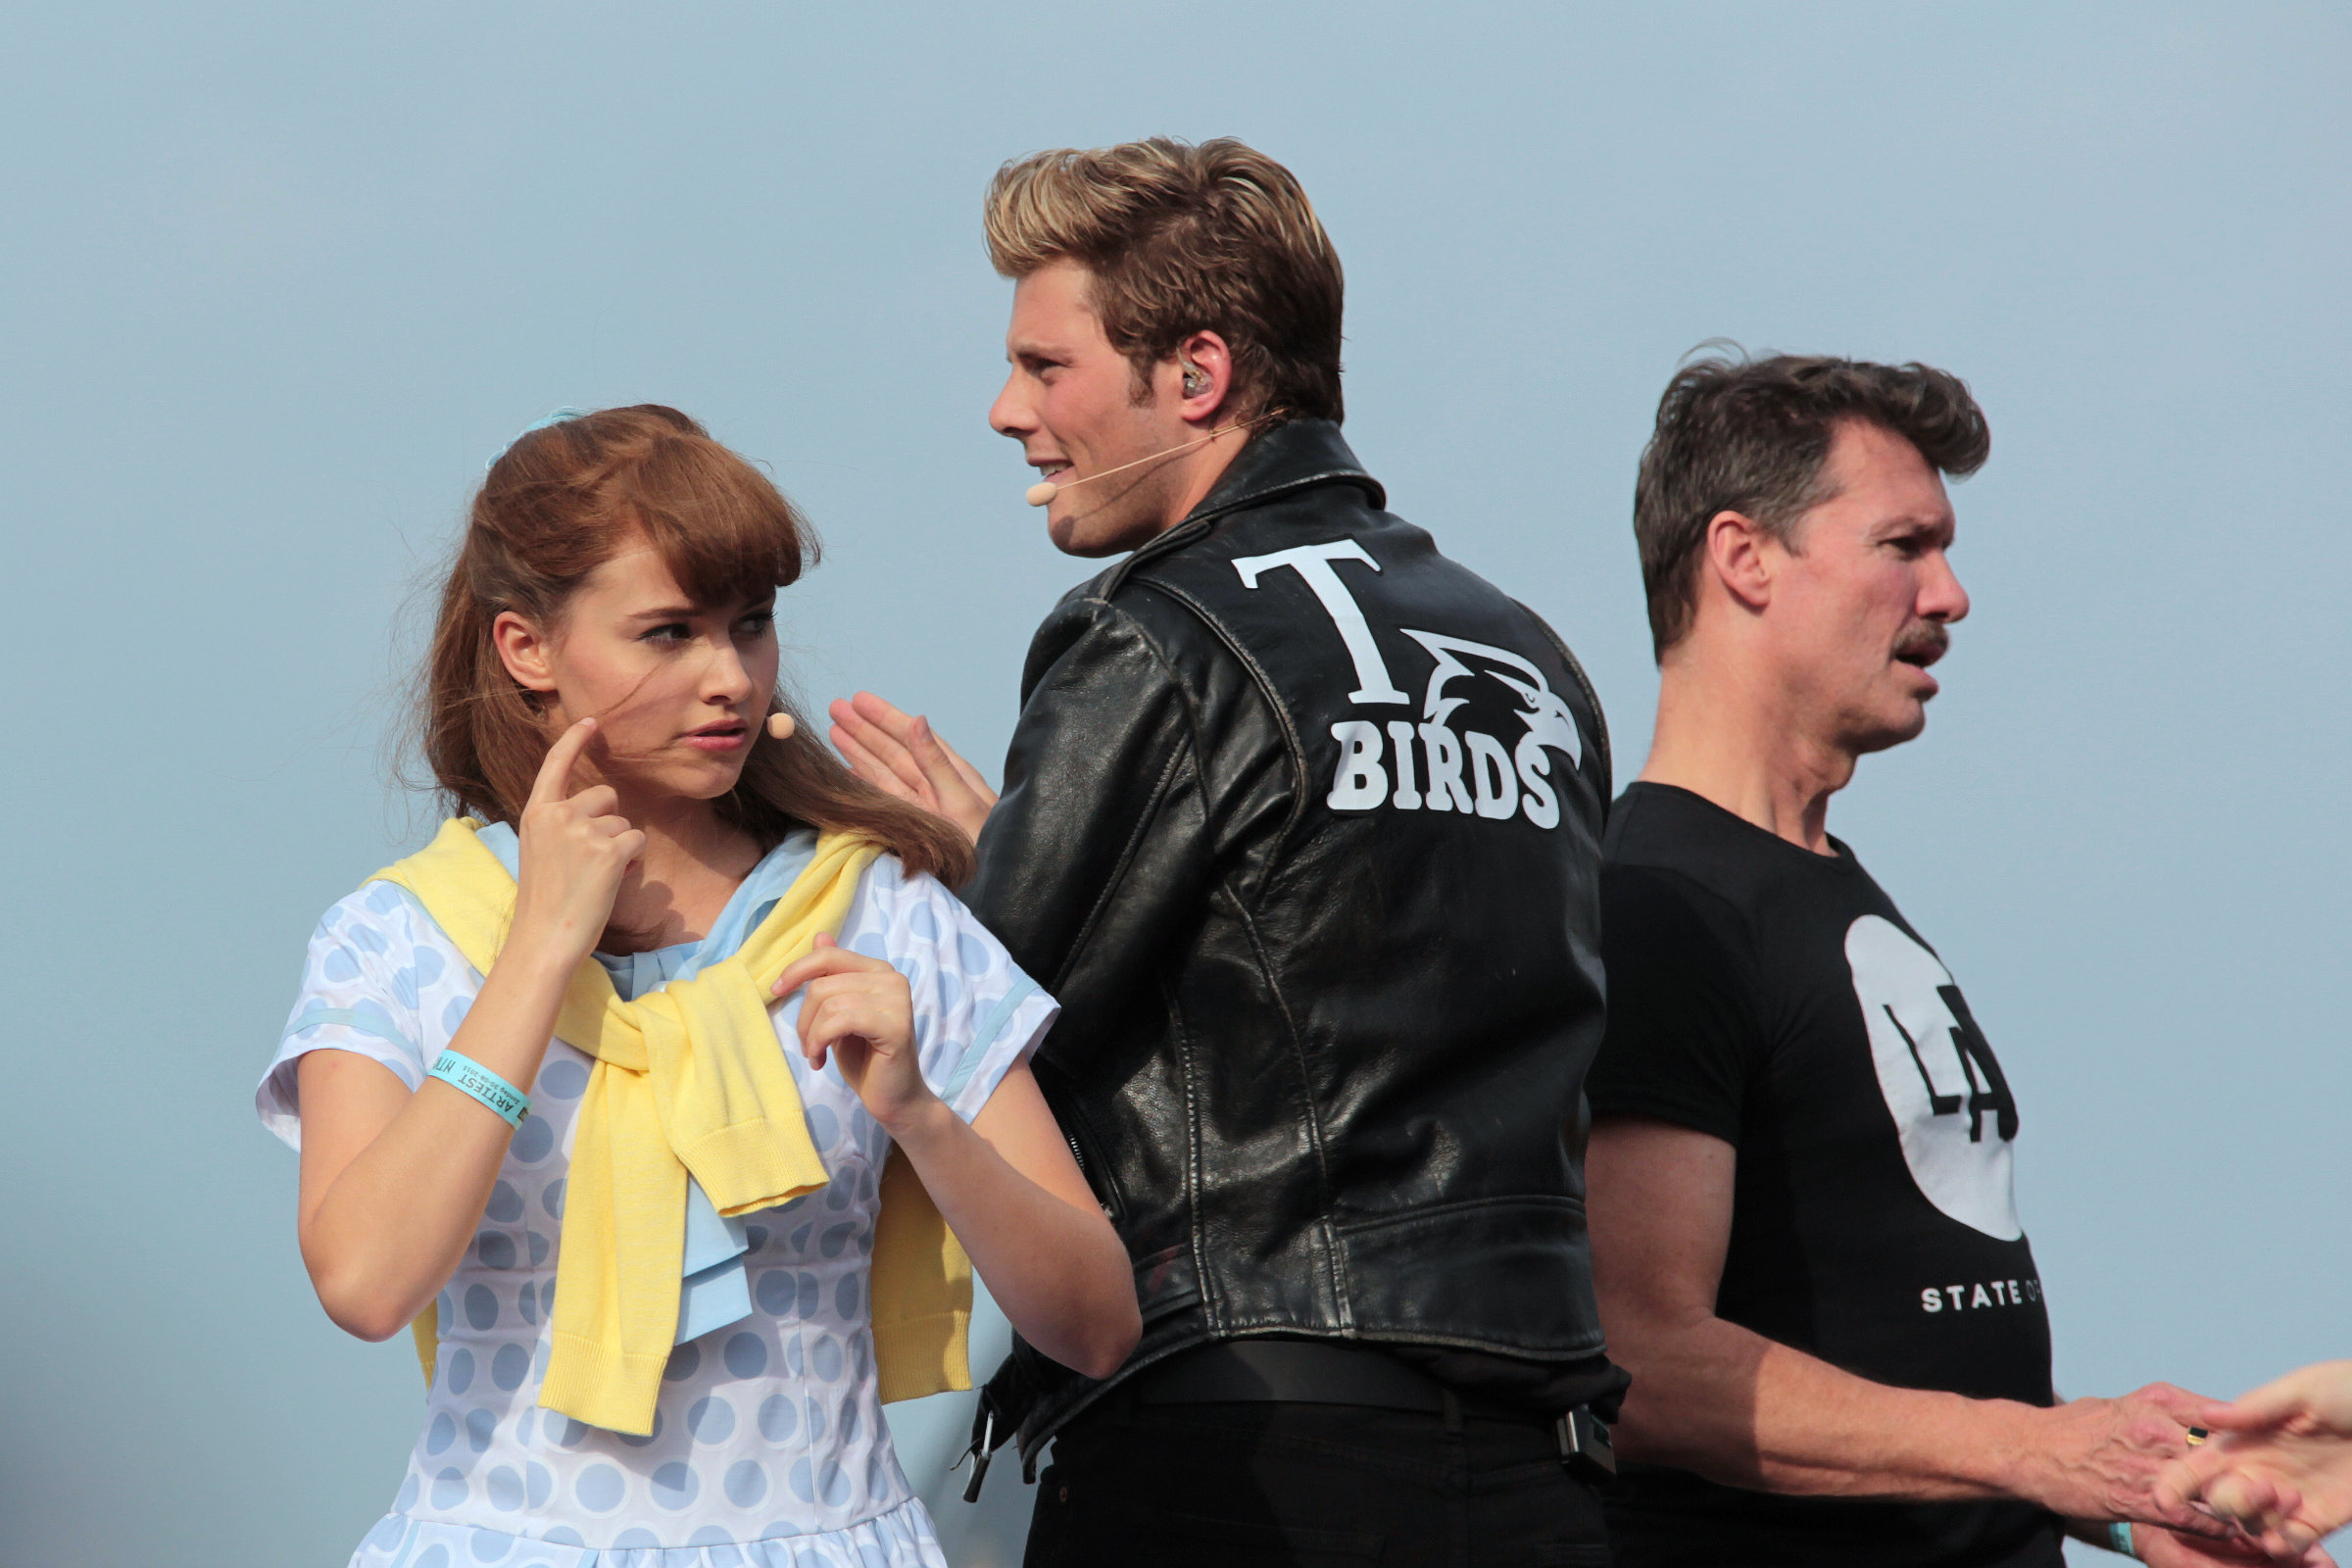 File:Grease (musical) III (20446297113) jpg - Wikimedia Commons